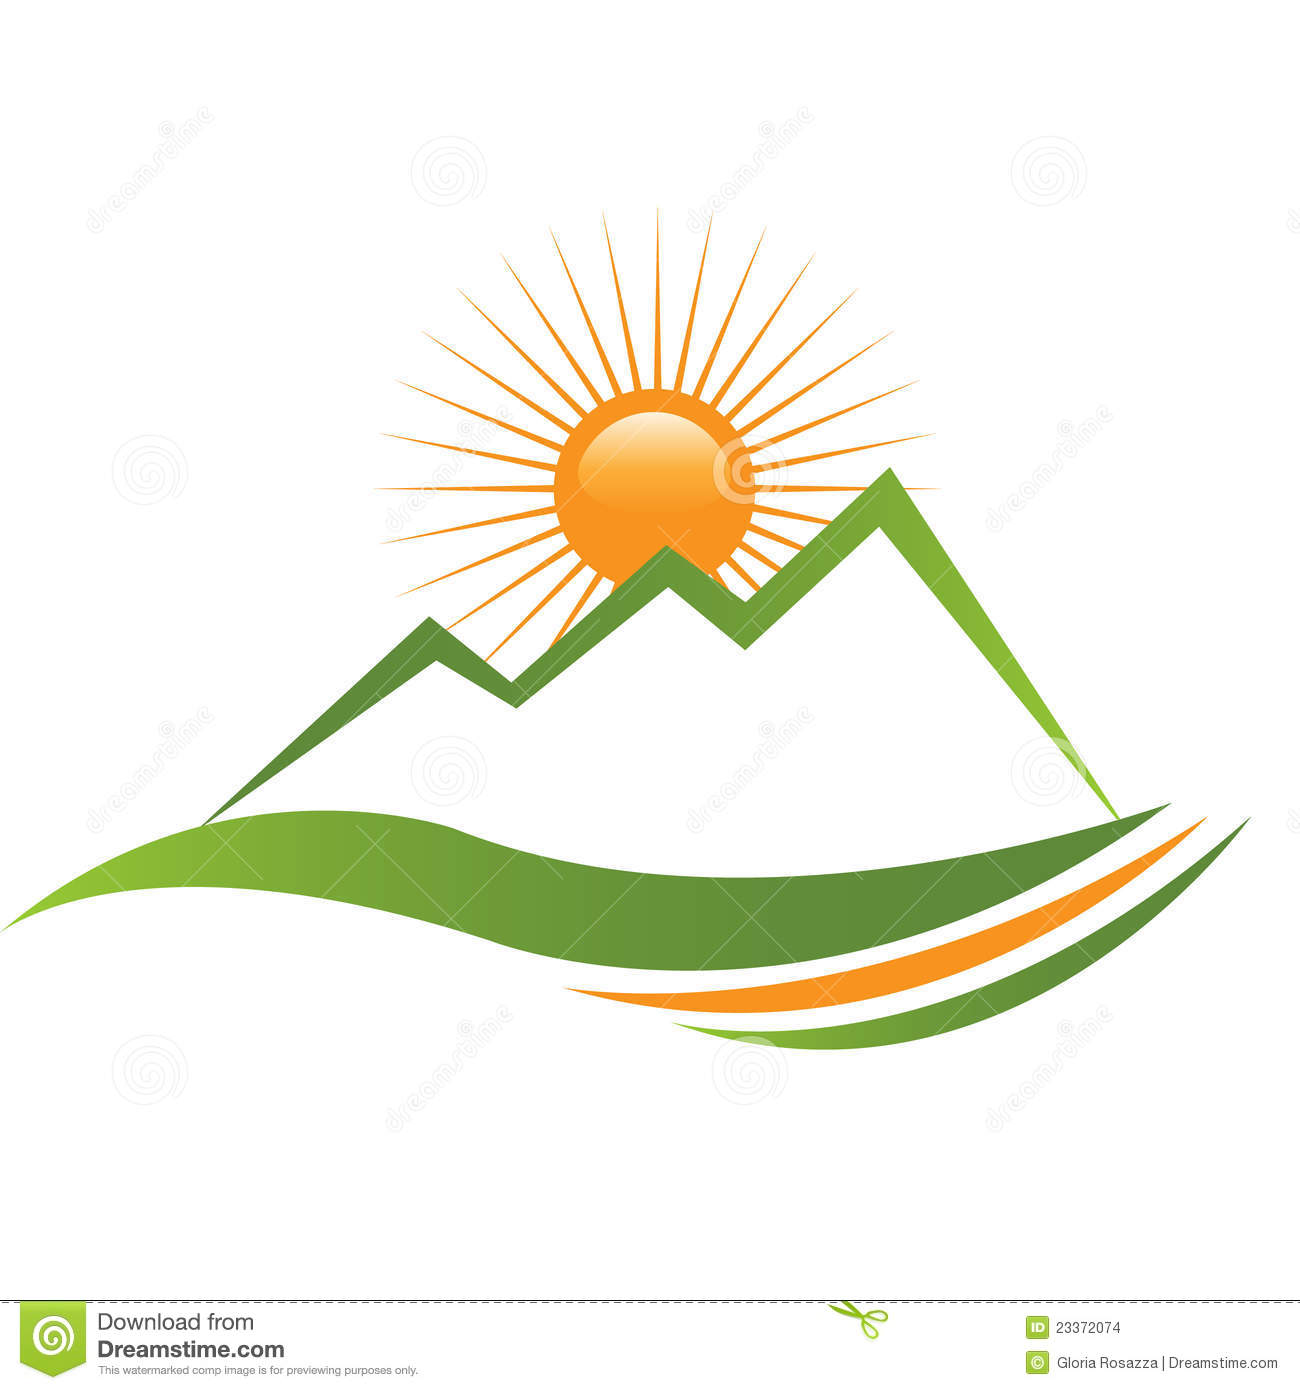 ... dew logo logo quiz game answers level 1 logo with mountains and sun